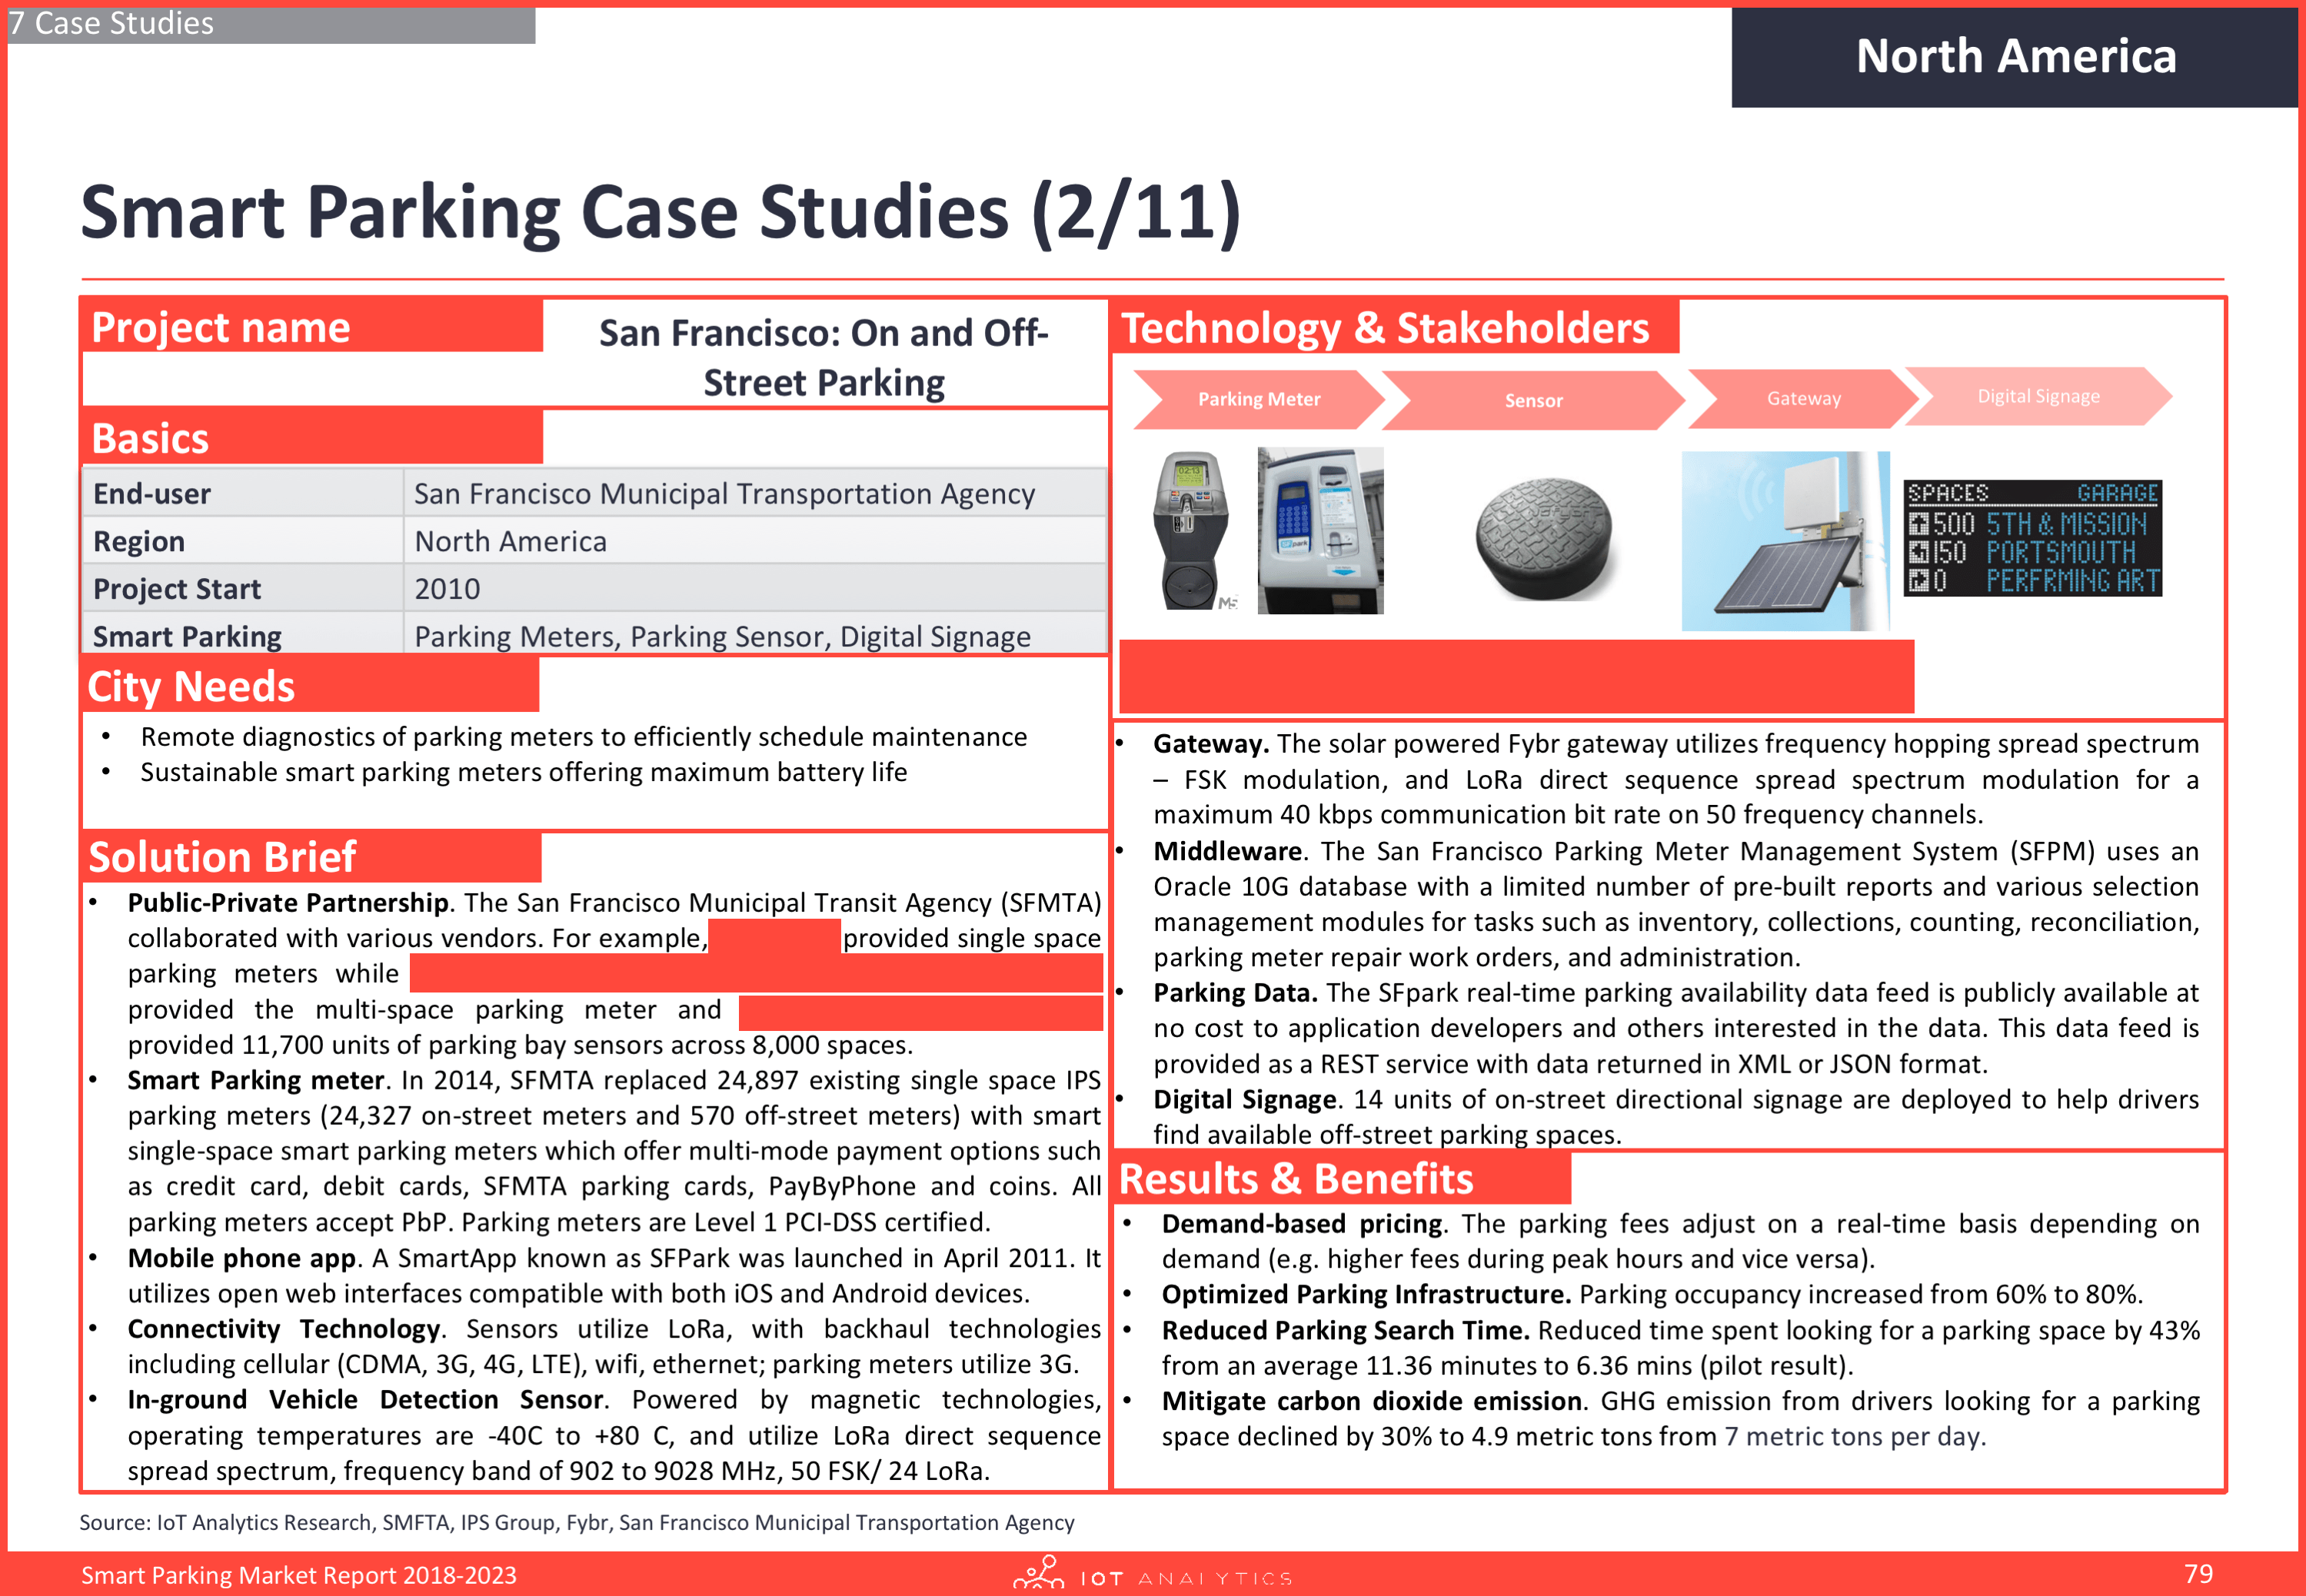 Smart parking report - case studies